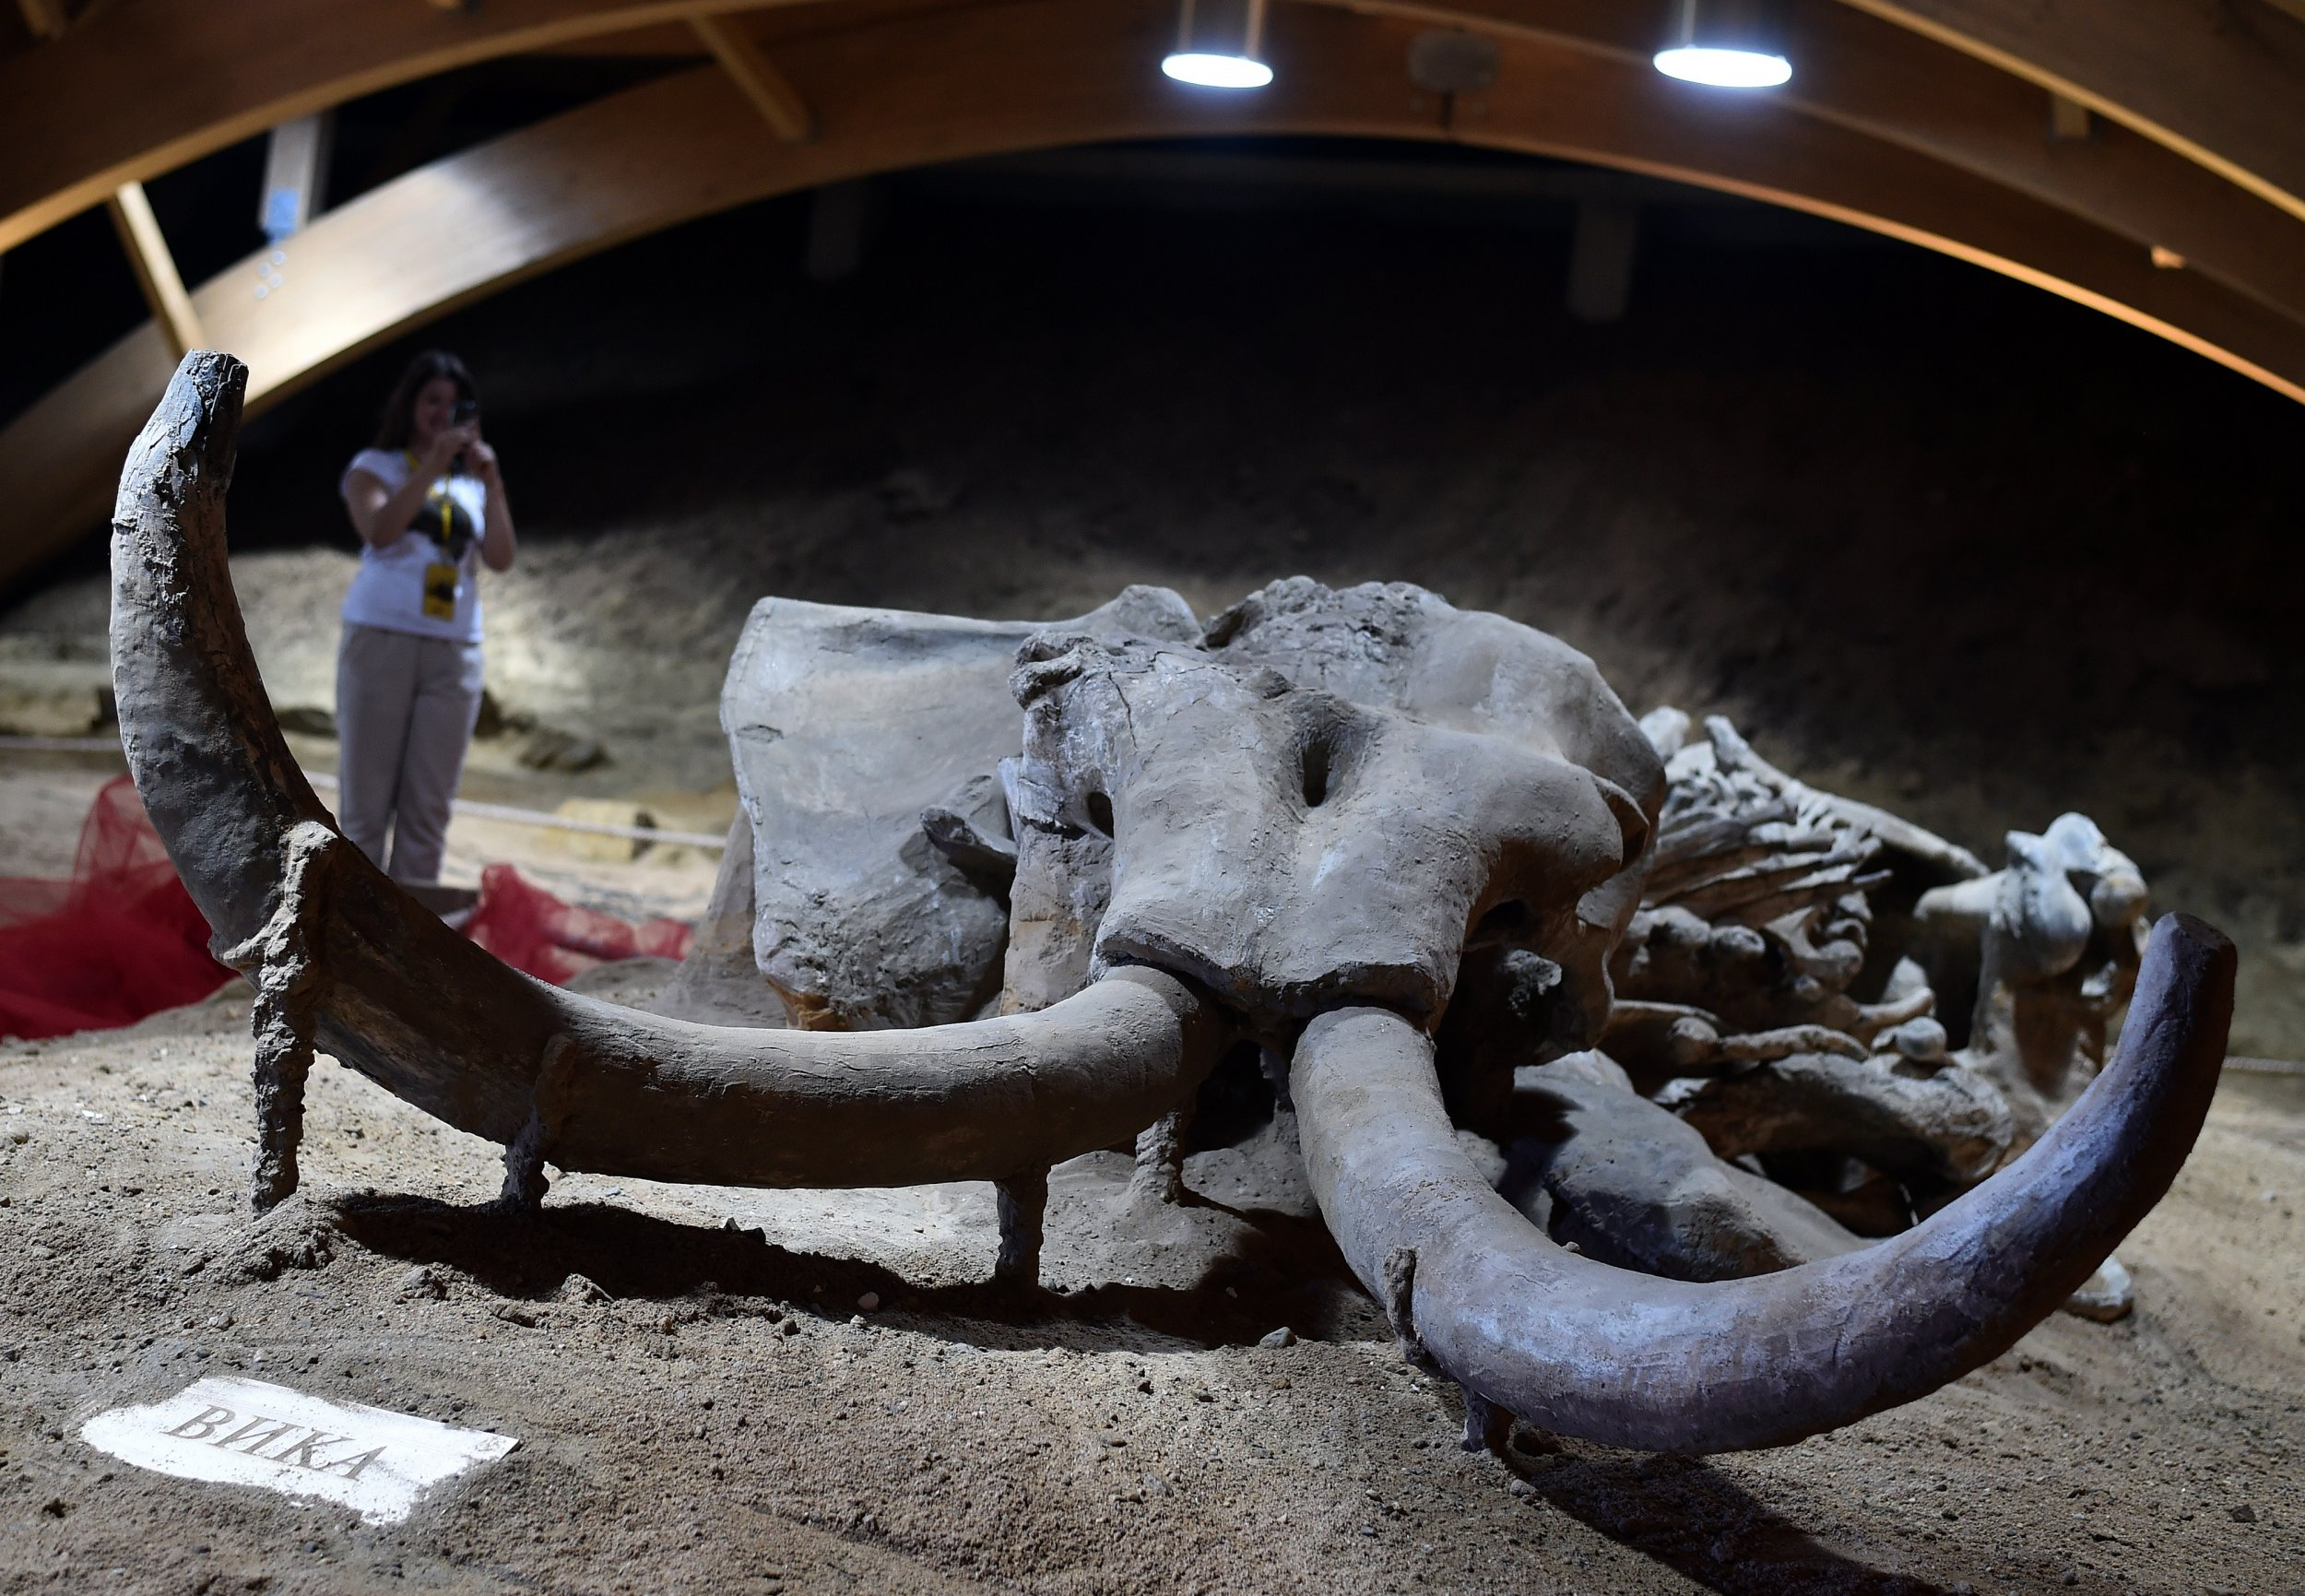 04_19_mammoth_mammal_extinction